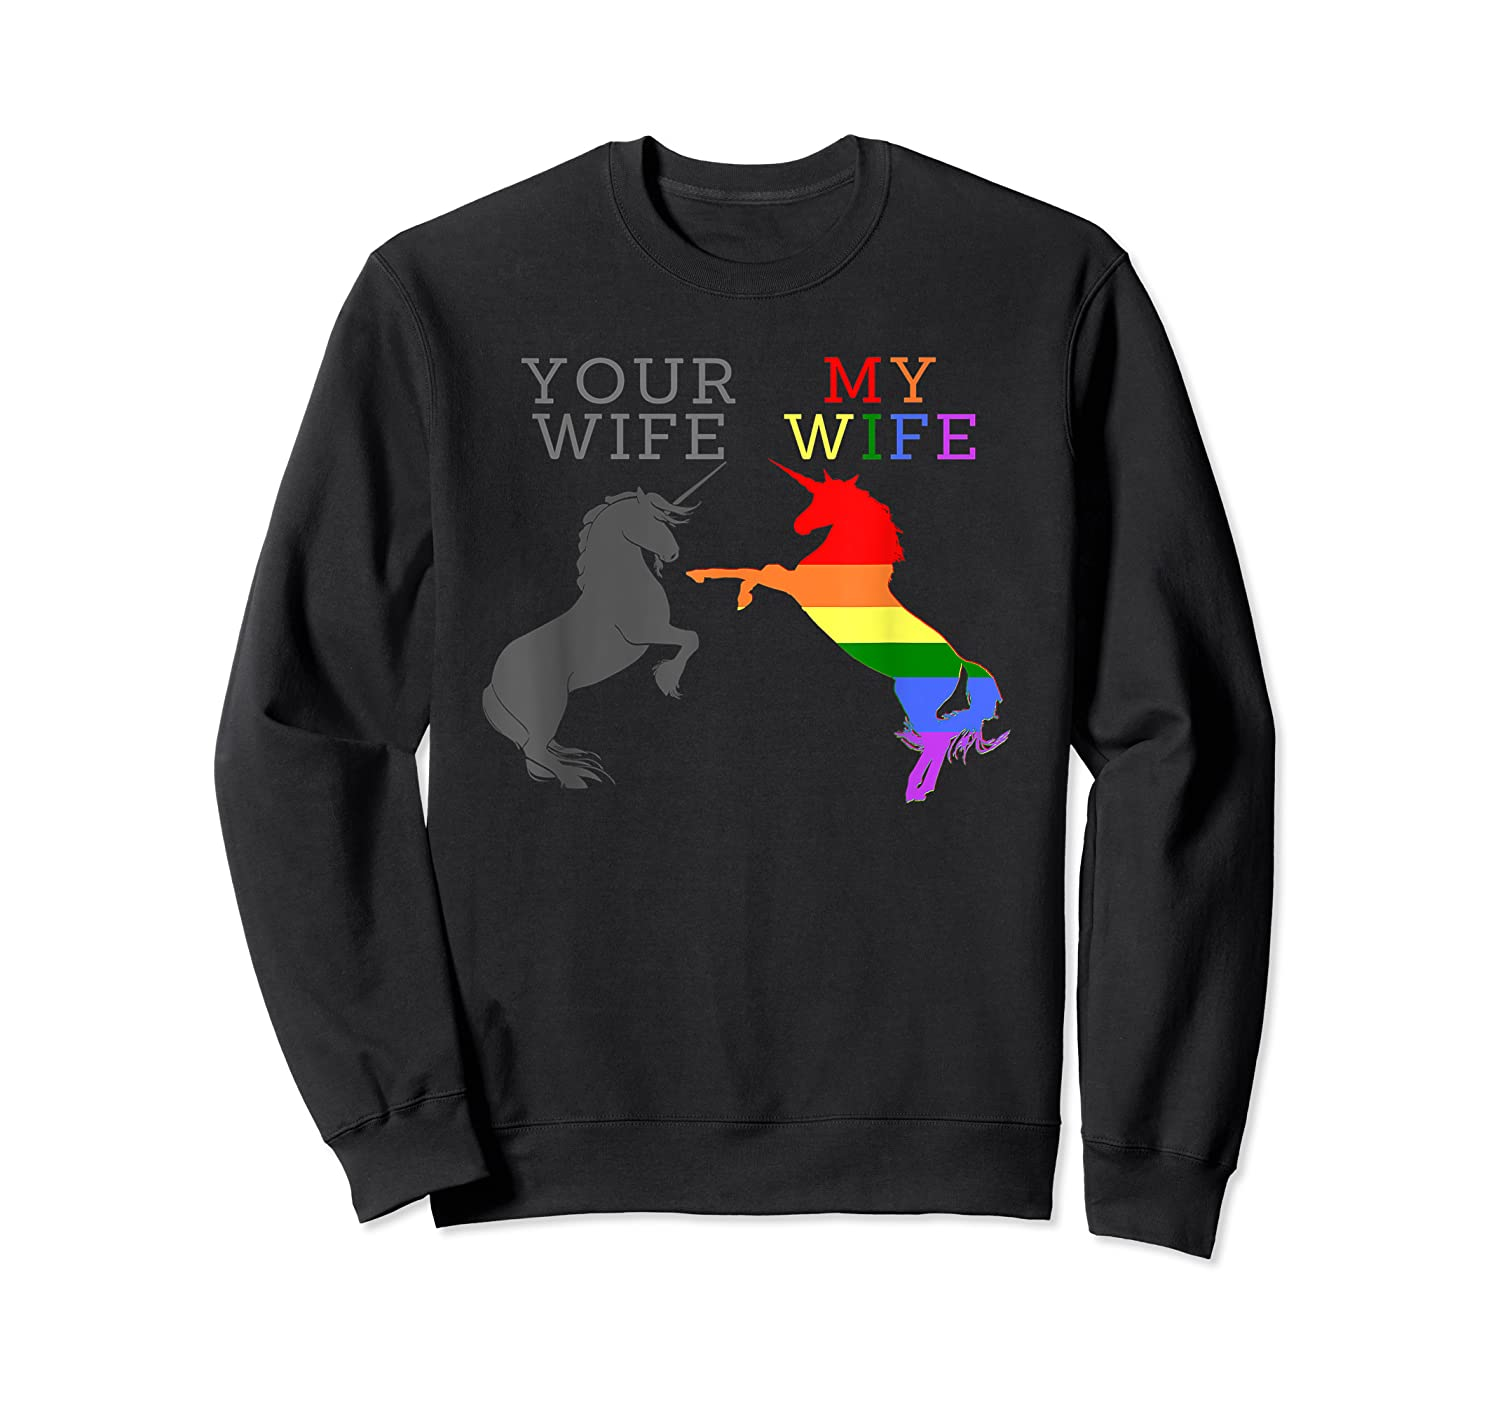 Your Wife My Wife Unicorn Gay Lgbt Pride Month Gifts Shirts Crewneck Sweater